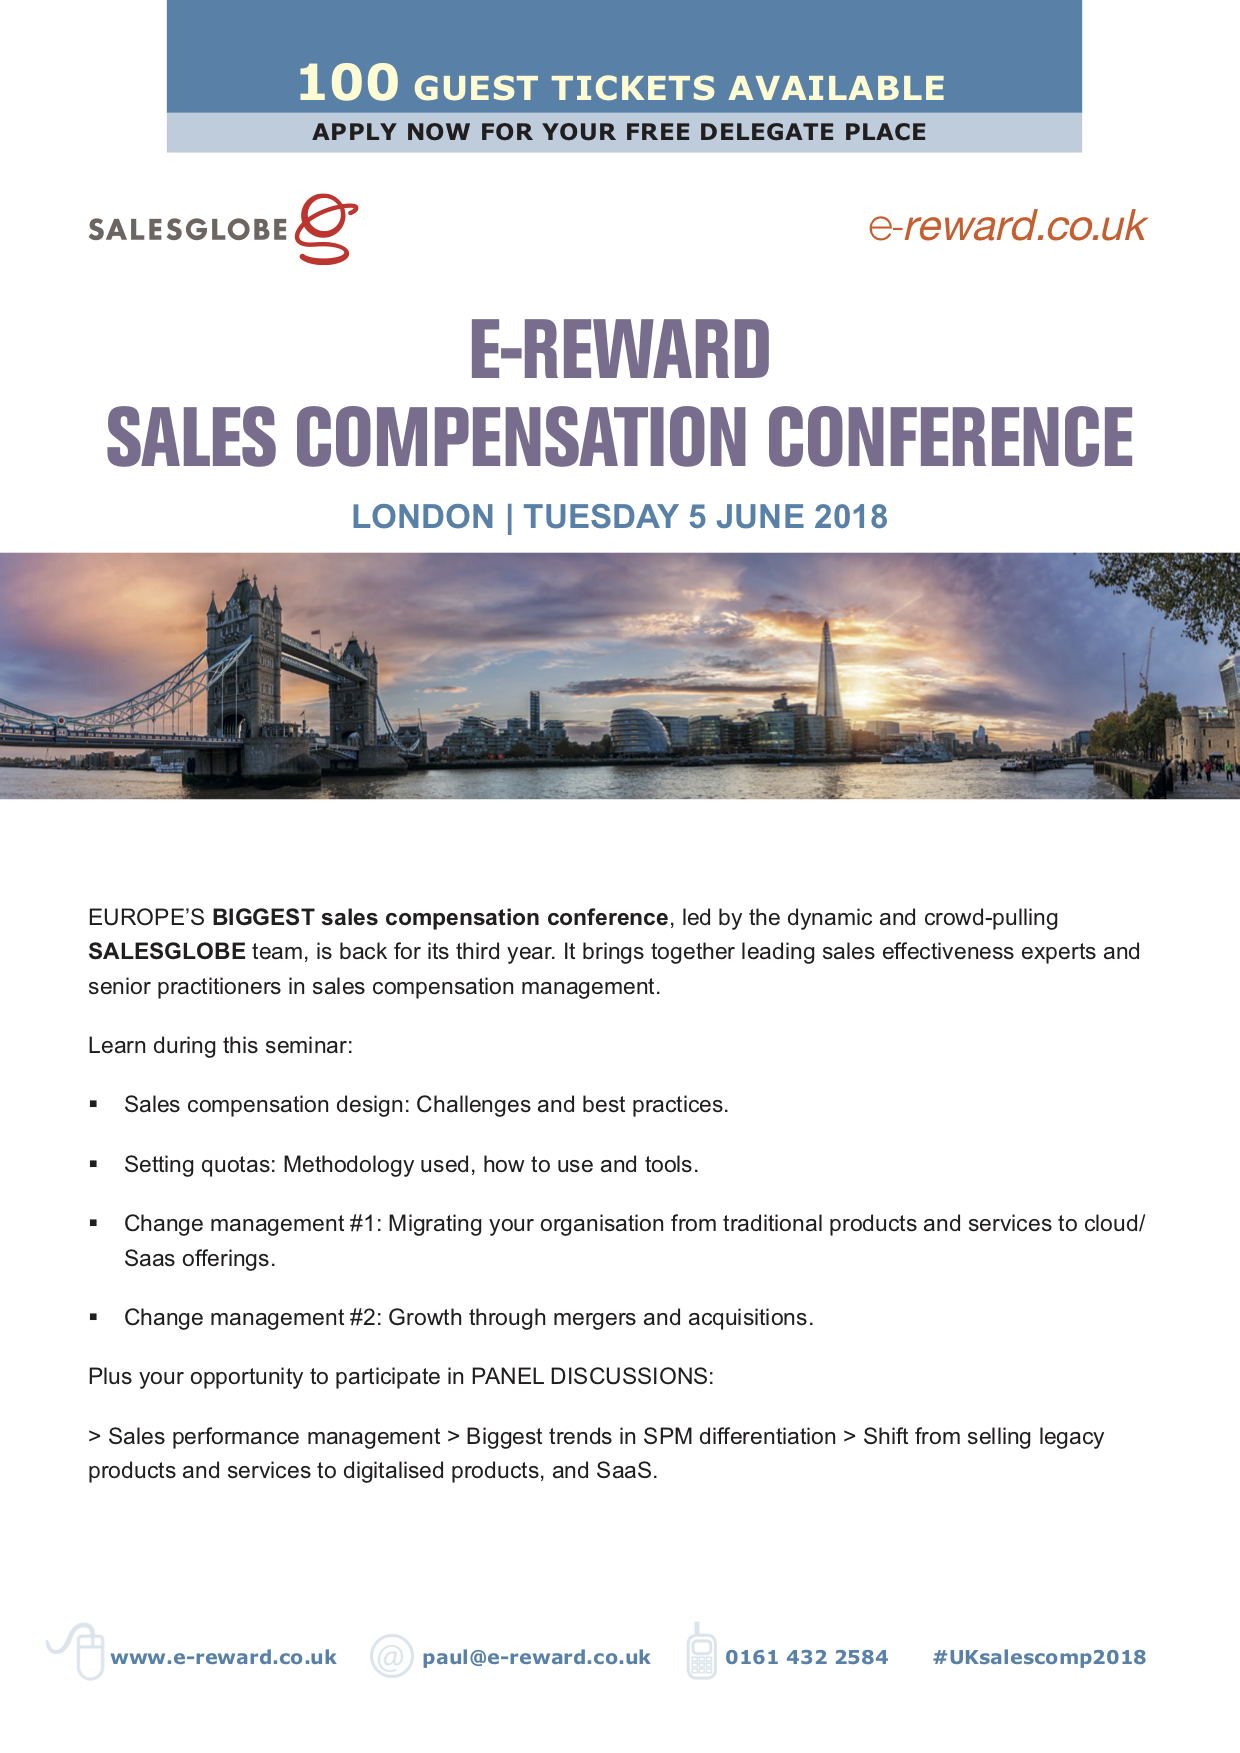 Sales Comp Conference brochure